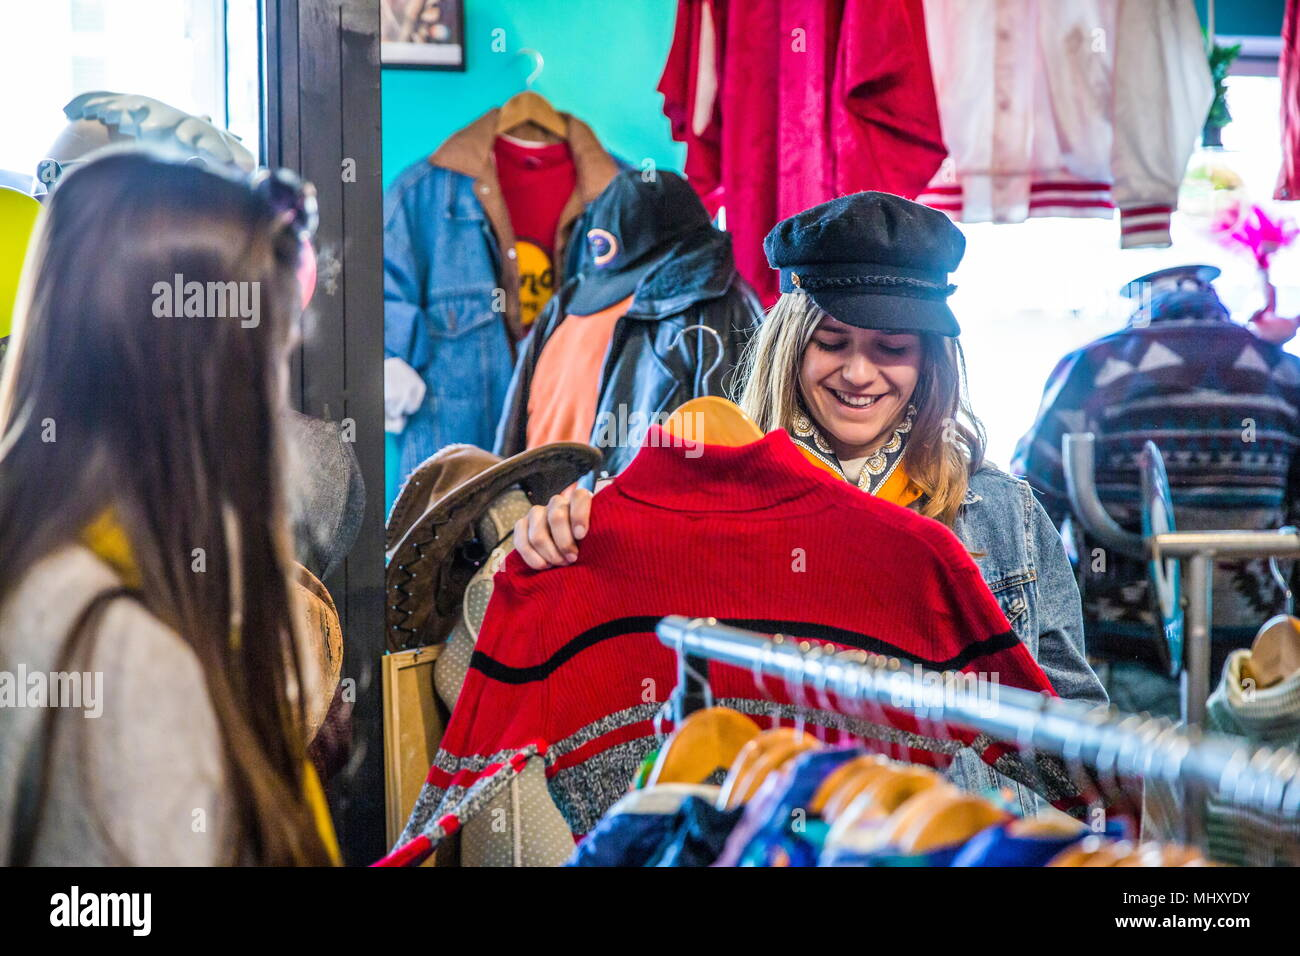 Friends browsing vintage clothes in thrift store - Stock Image